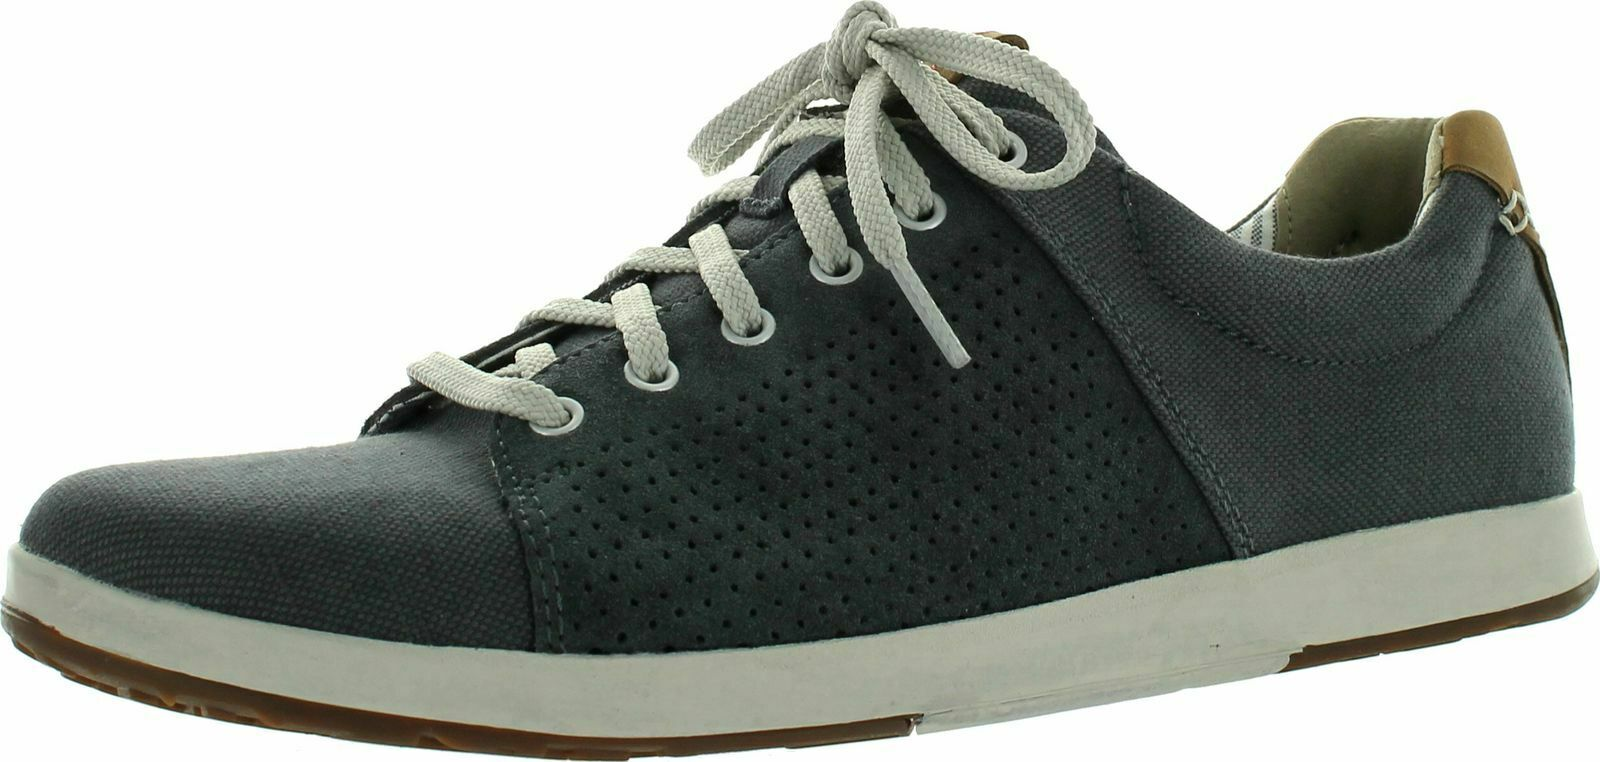 Clarks Mens Norwin Style Casual Lace Up zapatillas